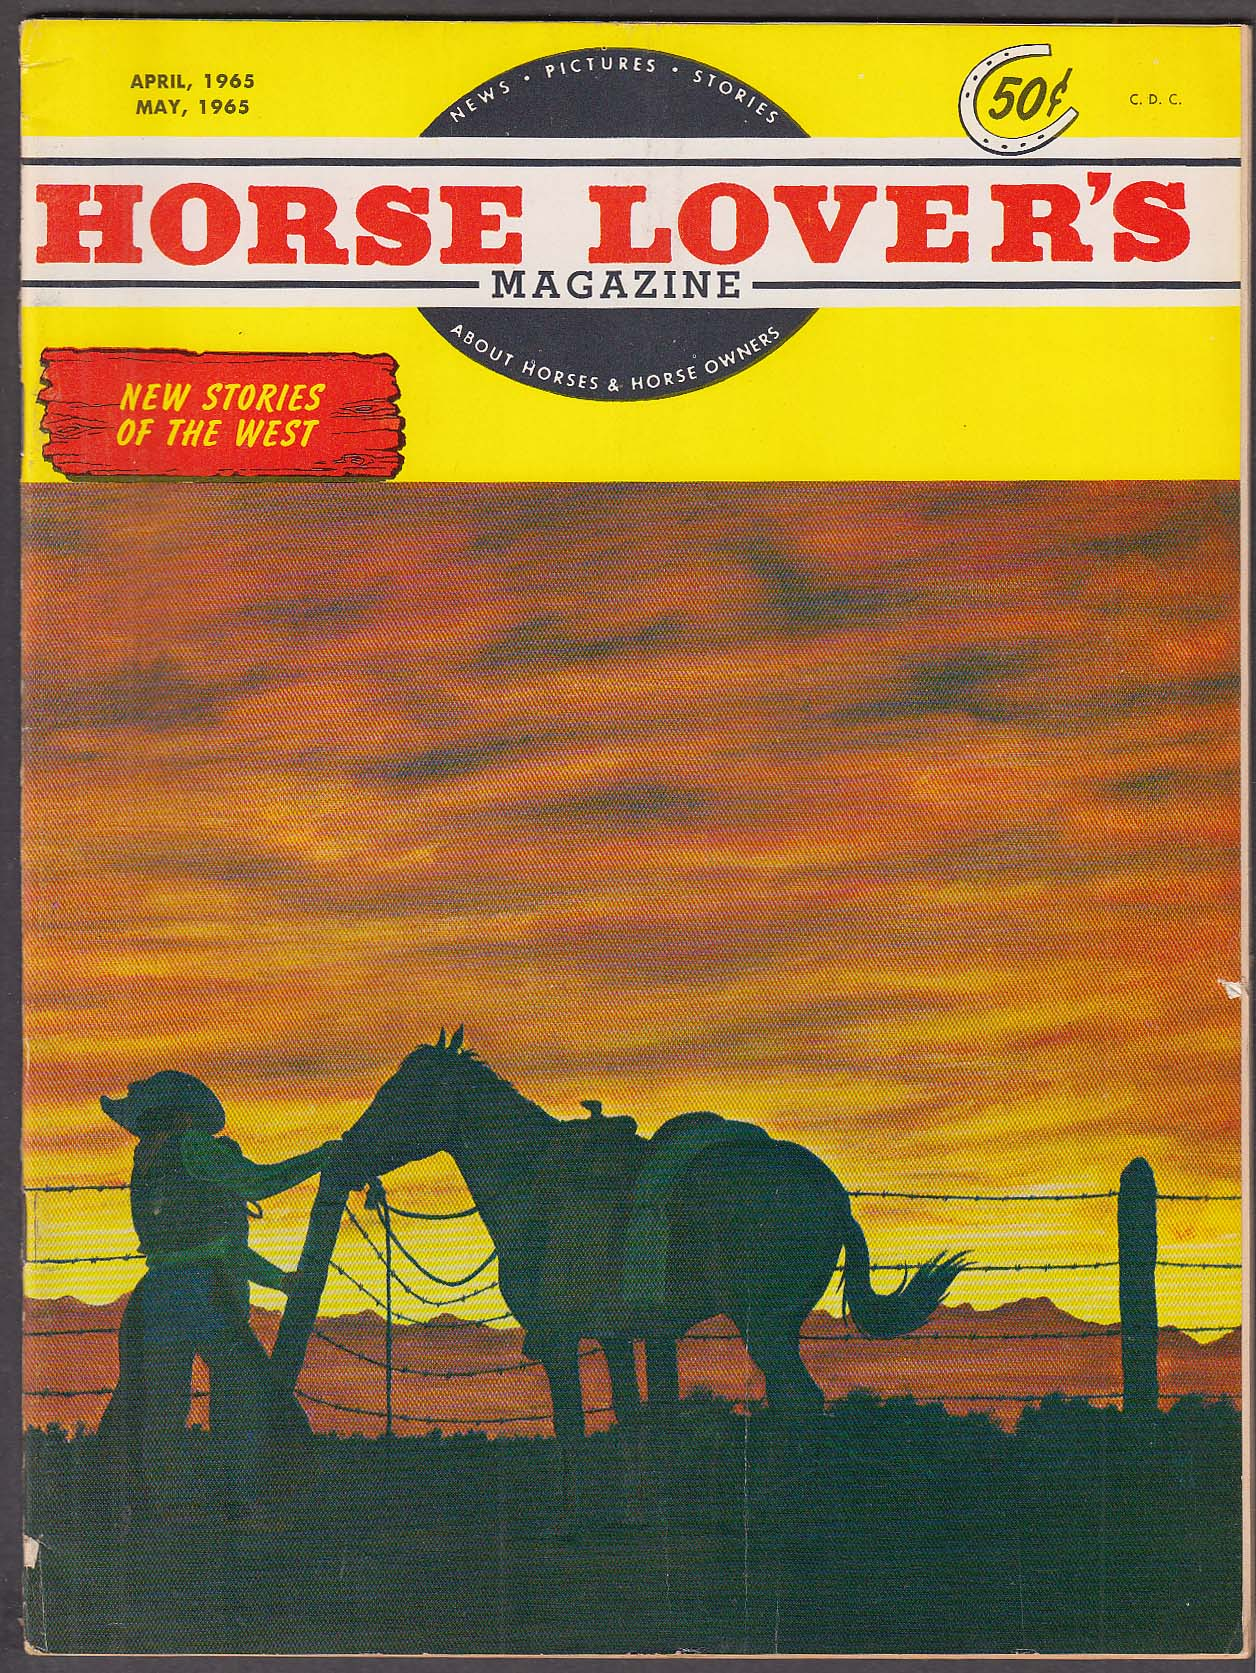 HORSE LOVER'S Polish Arabians in Canada Randy Steffen Chico ++ 4-5 1965